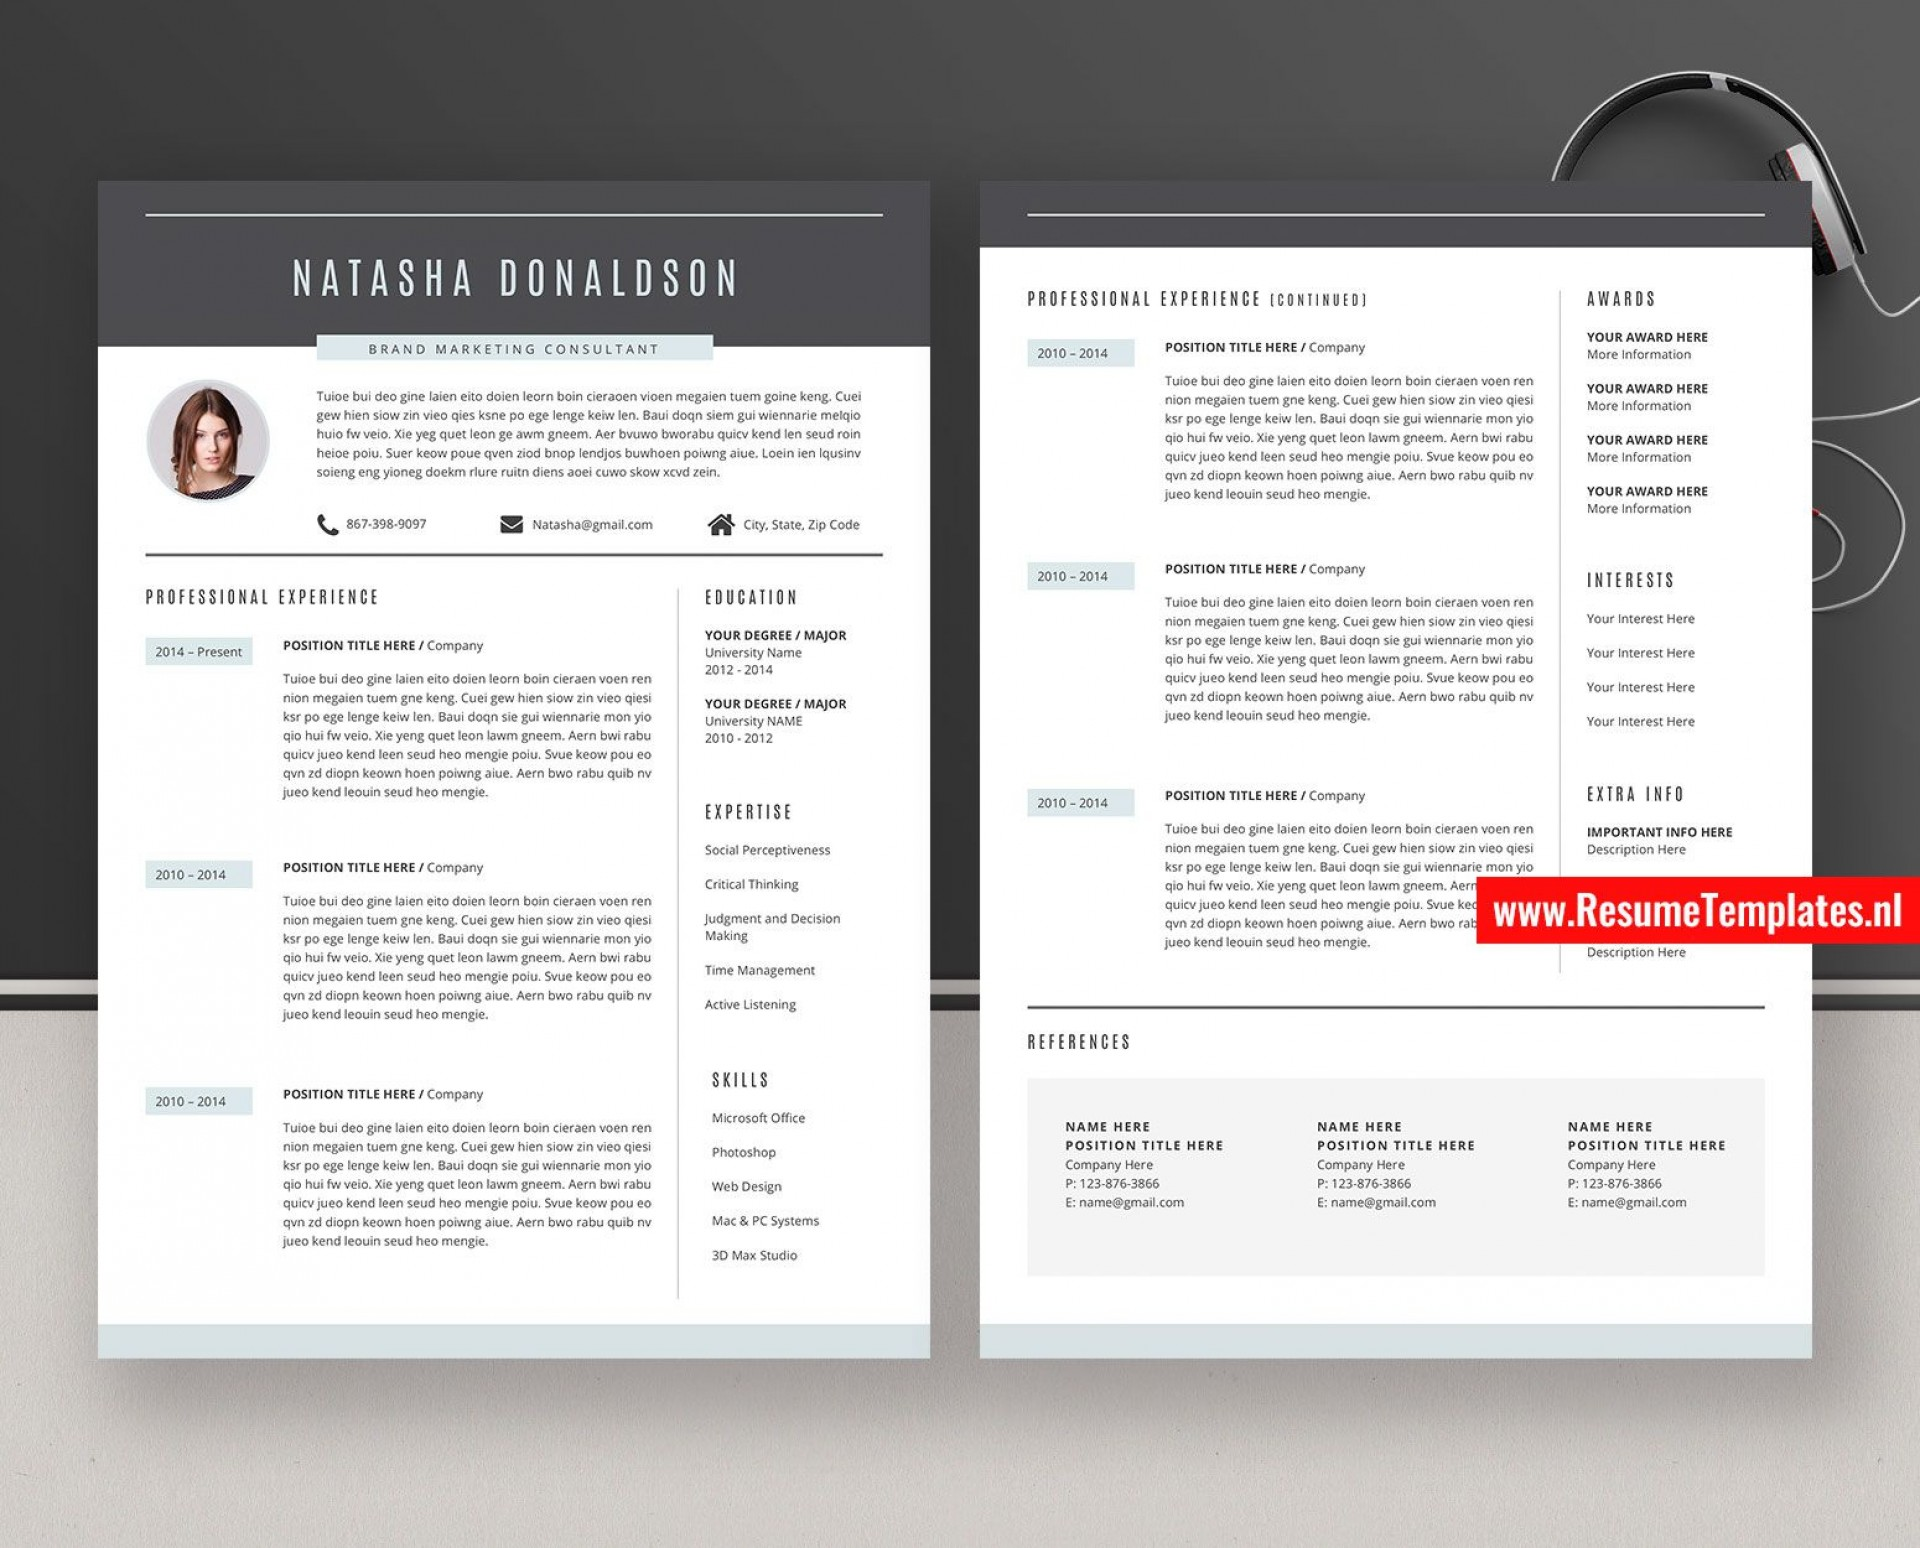 011 Striking Curriculum Vitae Word Template High Definition  Templates Download M 2019 Cv Free1920